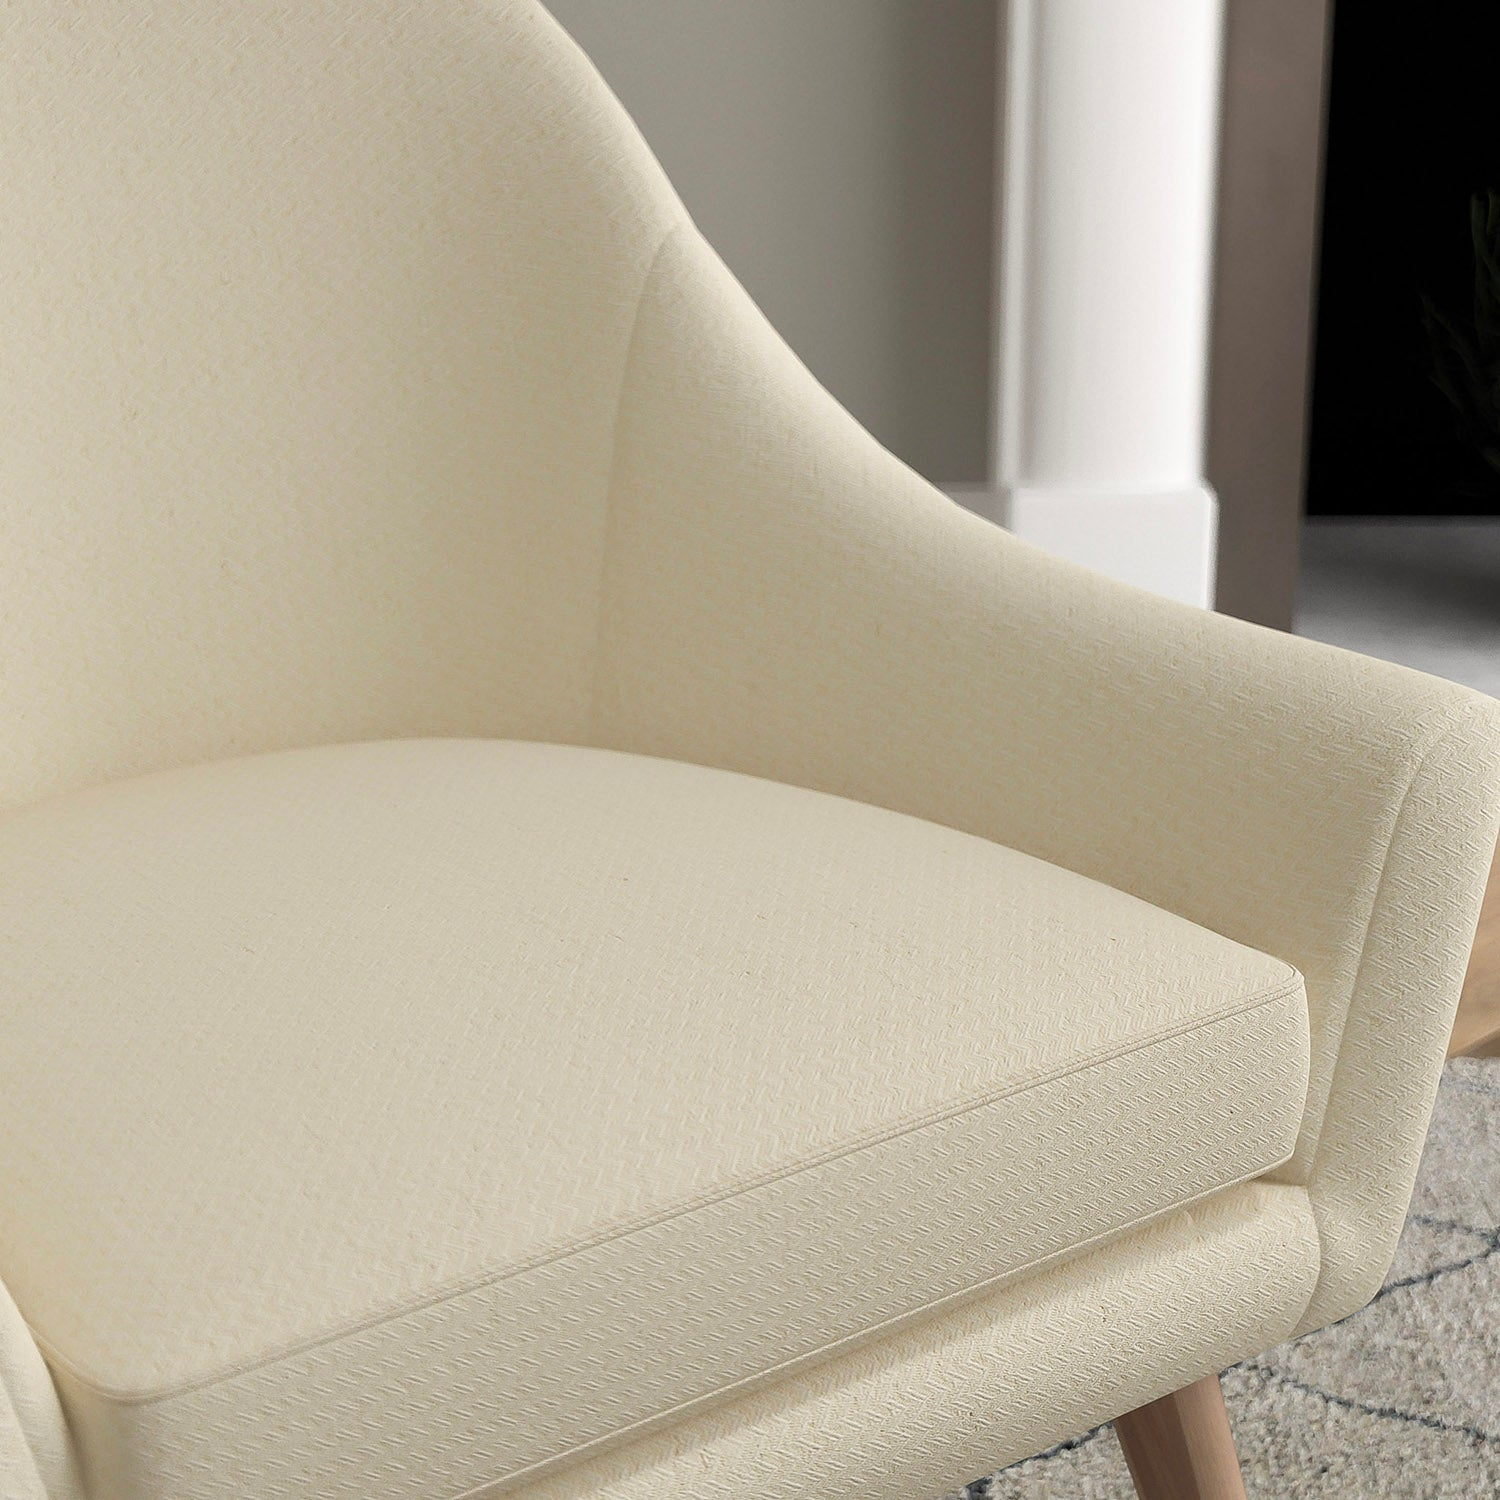 Chair with a light neutral upholstery fabric with a chevron weave fabric